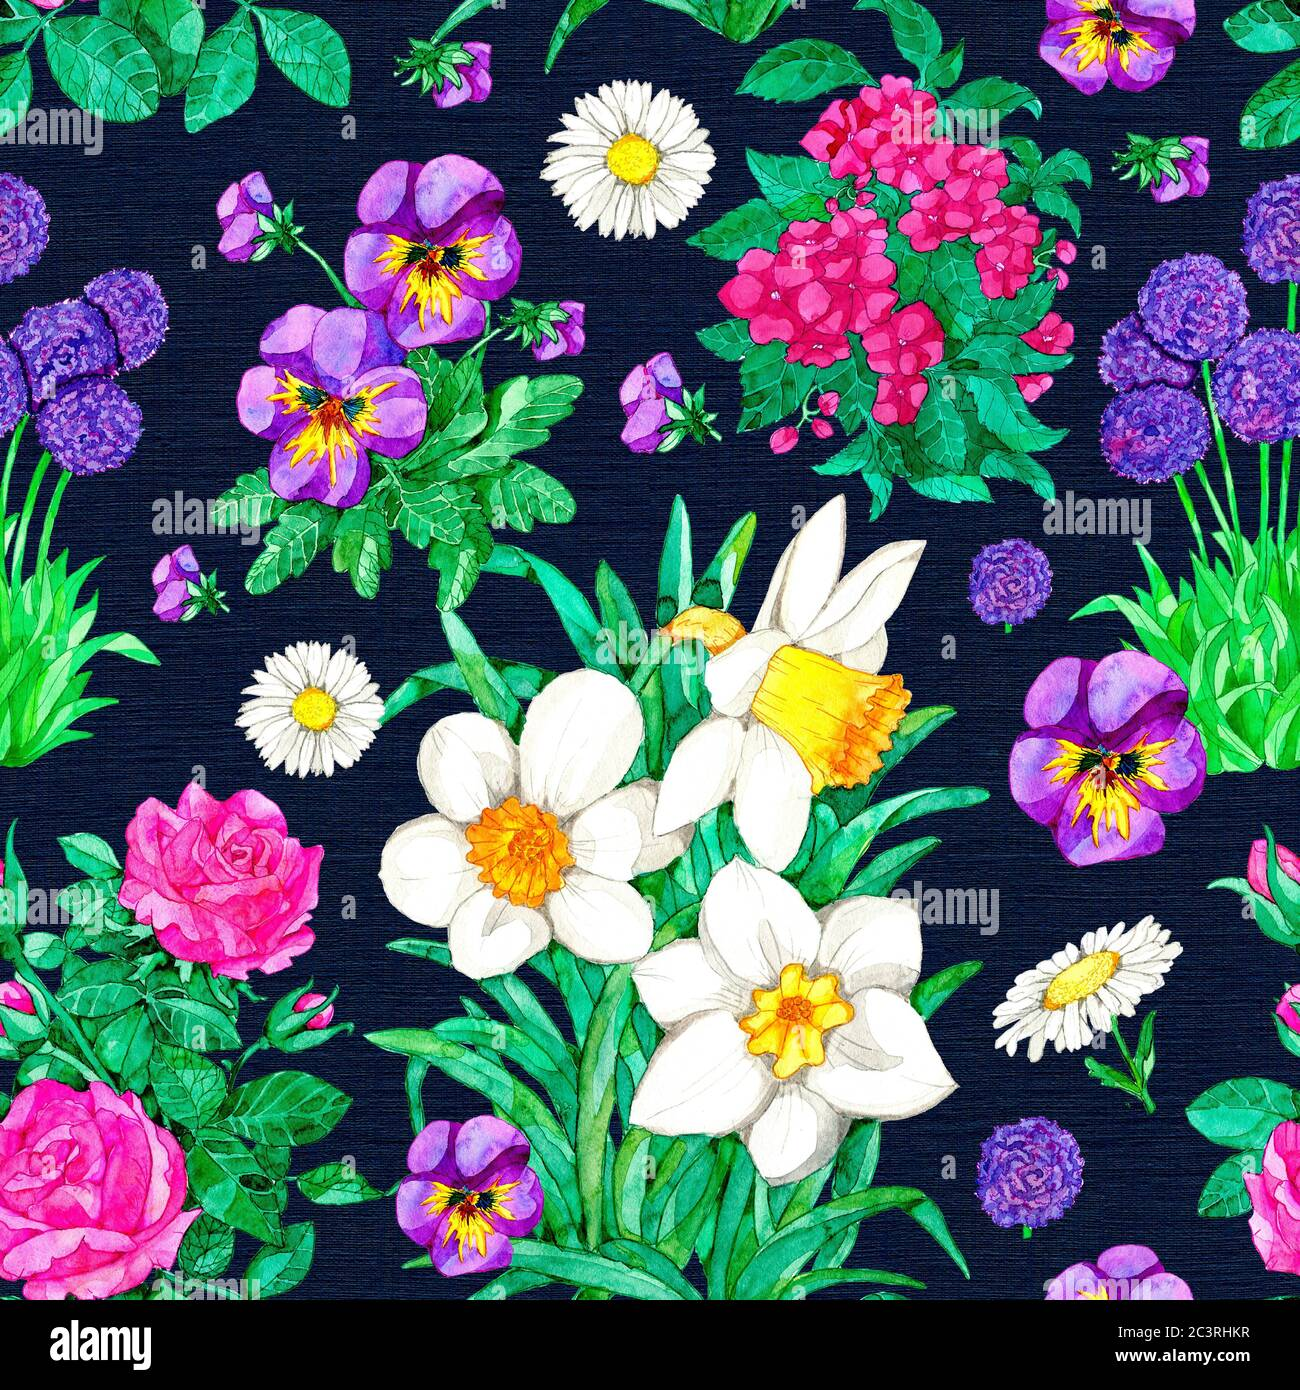 Seamless pattern with Narcissus, pansy, rose, daisy flower on blue background. Watercolor botanical illustration with floral elements for fabric texti Stock Photo